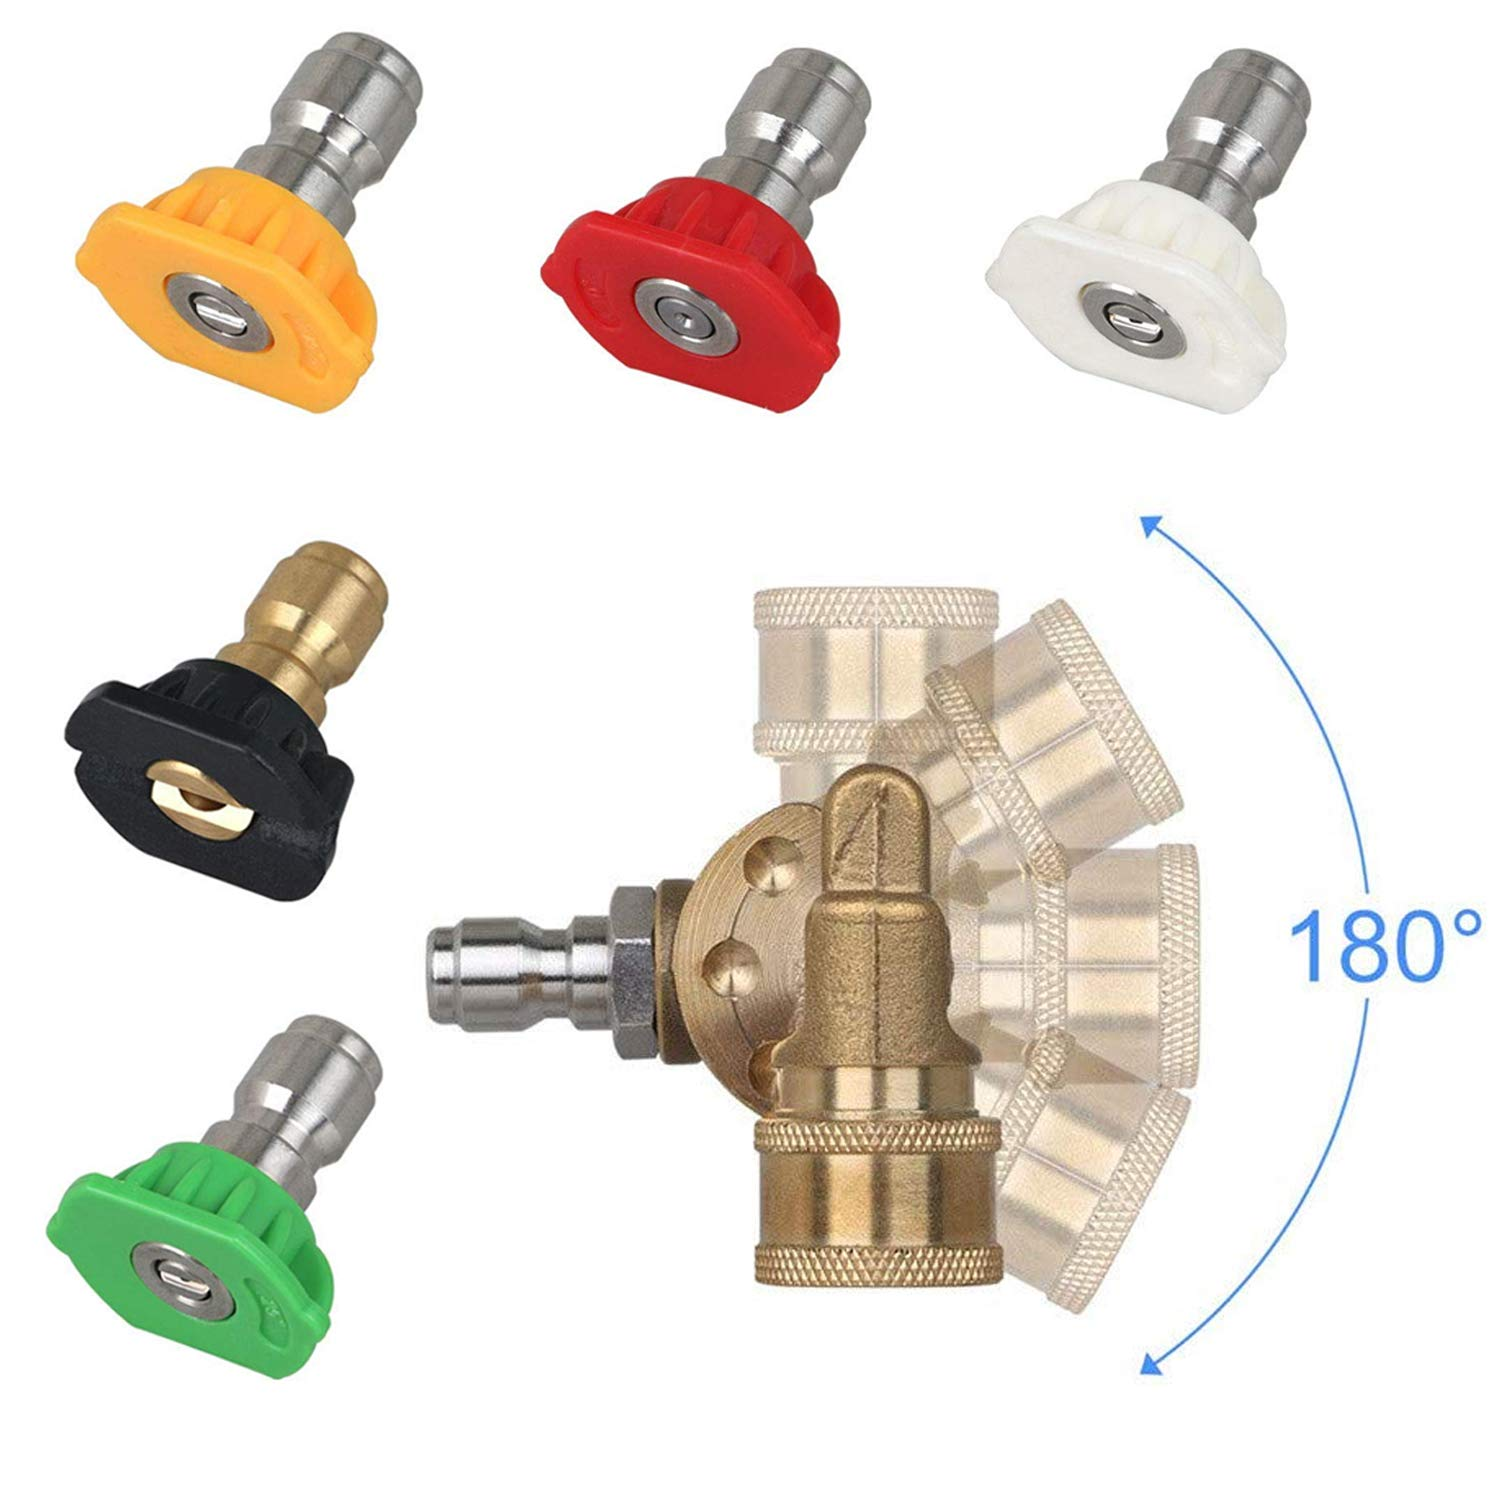 AgiiMan High Pressure Washer Nozzles Kit - 4500 PSI Power Washer Tips Accessories Set, 180 Degree Quick Connecting Pivoting Coupler by AgiiMan